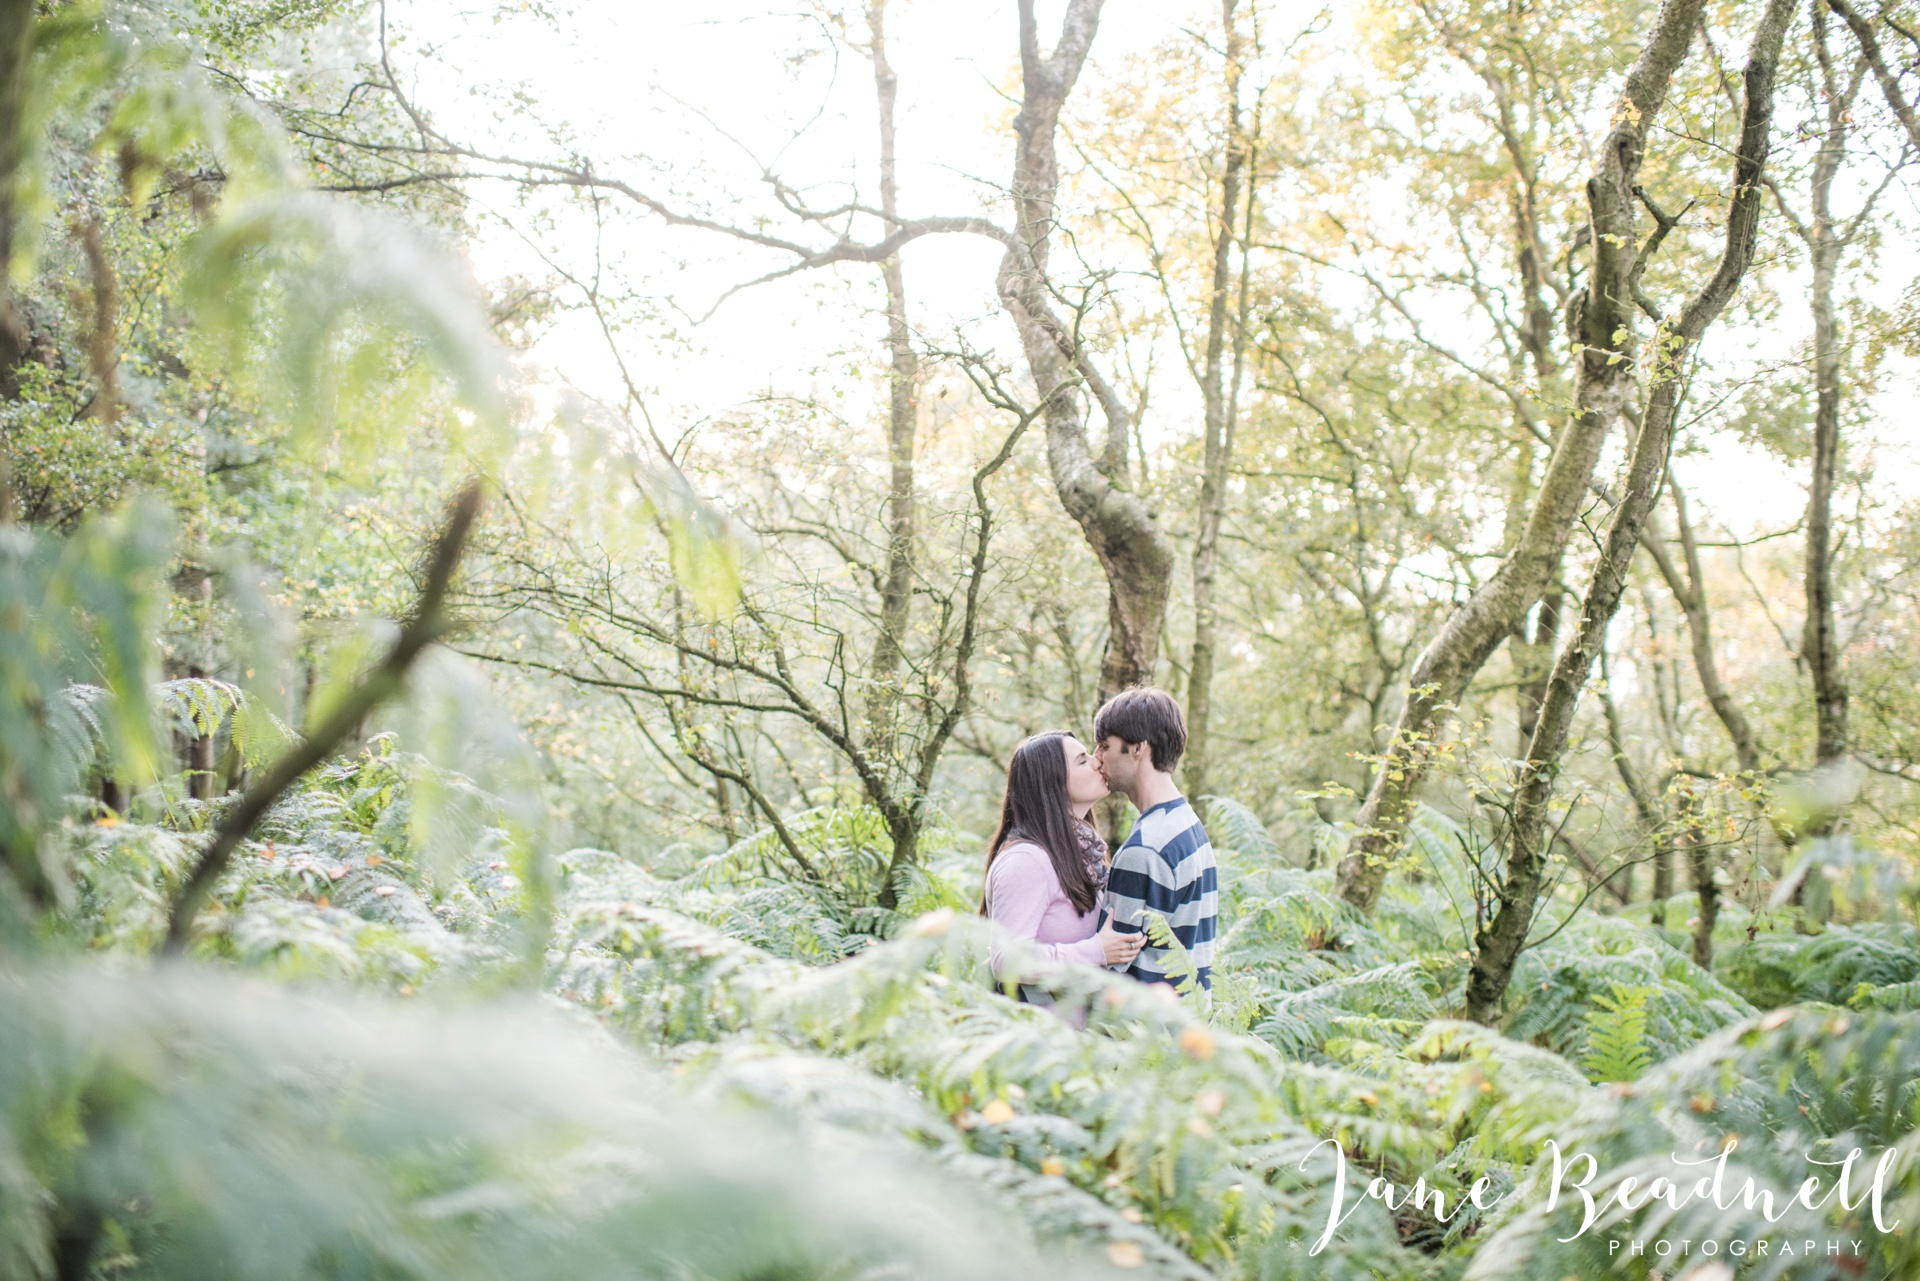 Otley Chevin engagement photography by Jane Beadnell Photography_0007